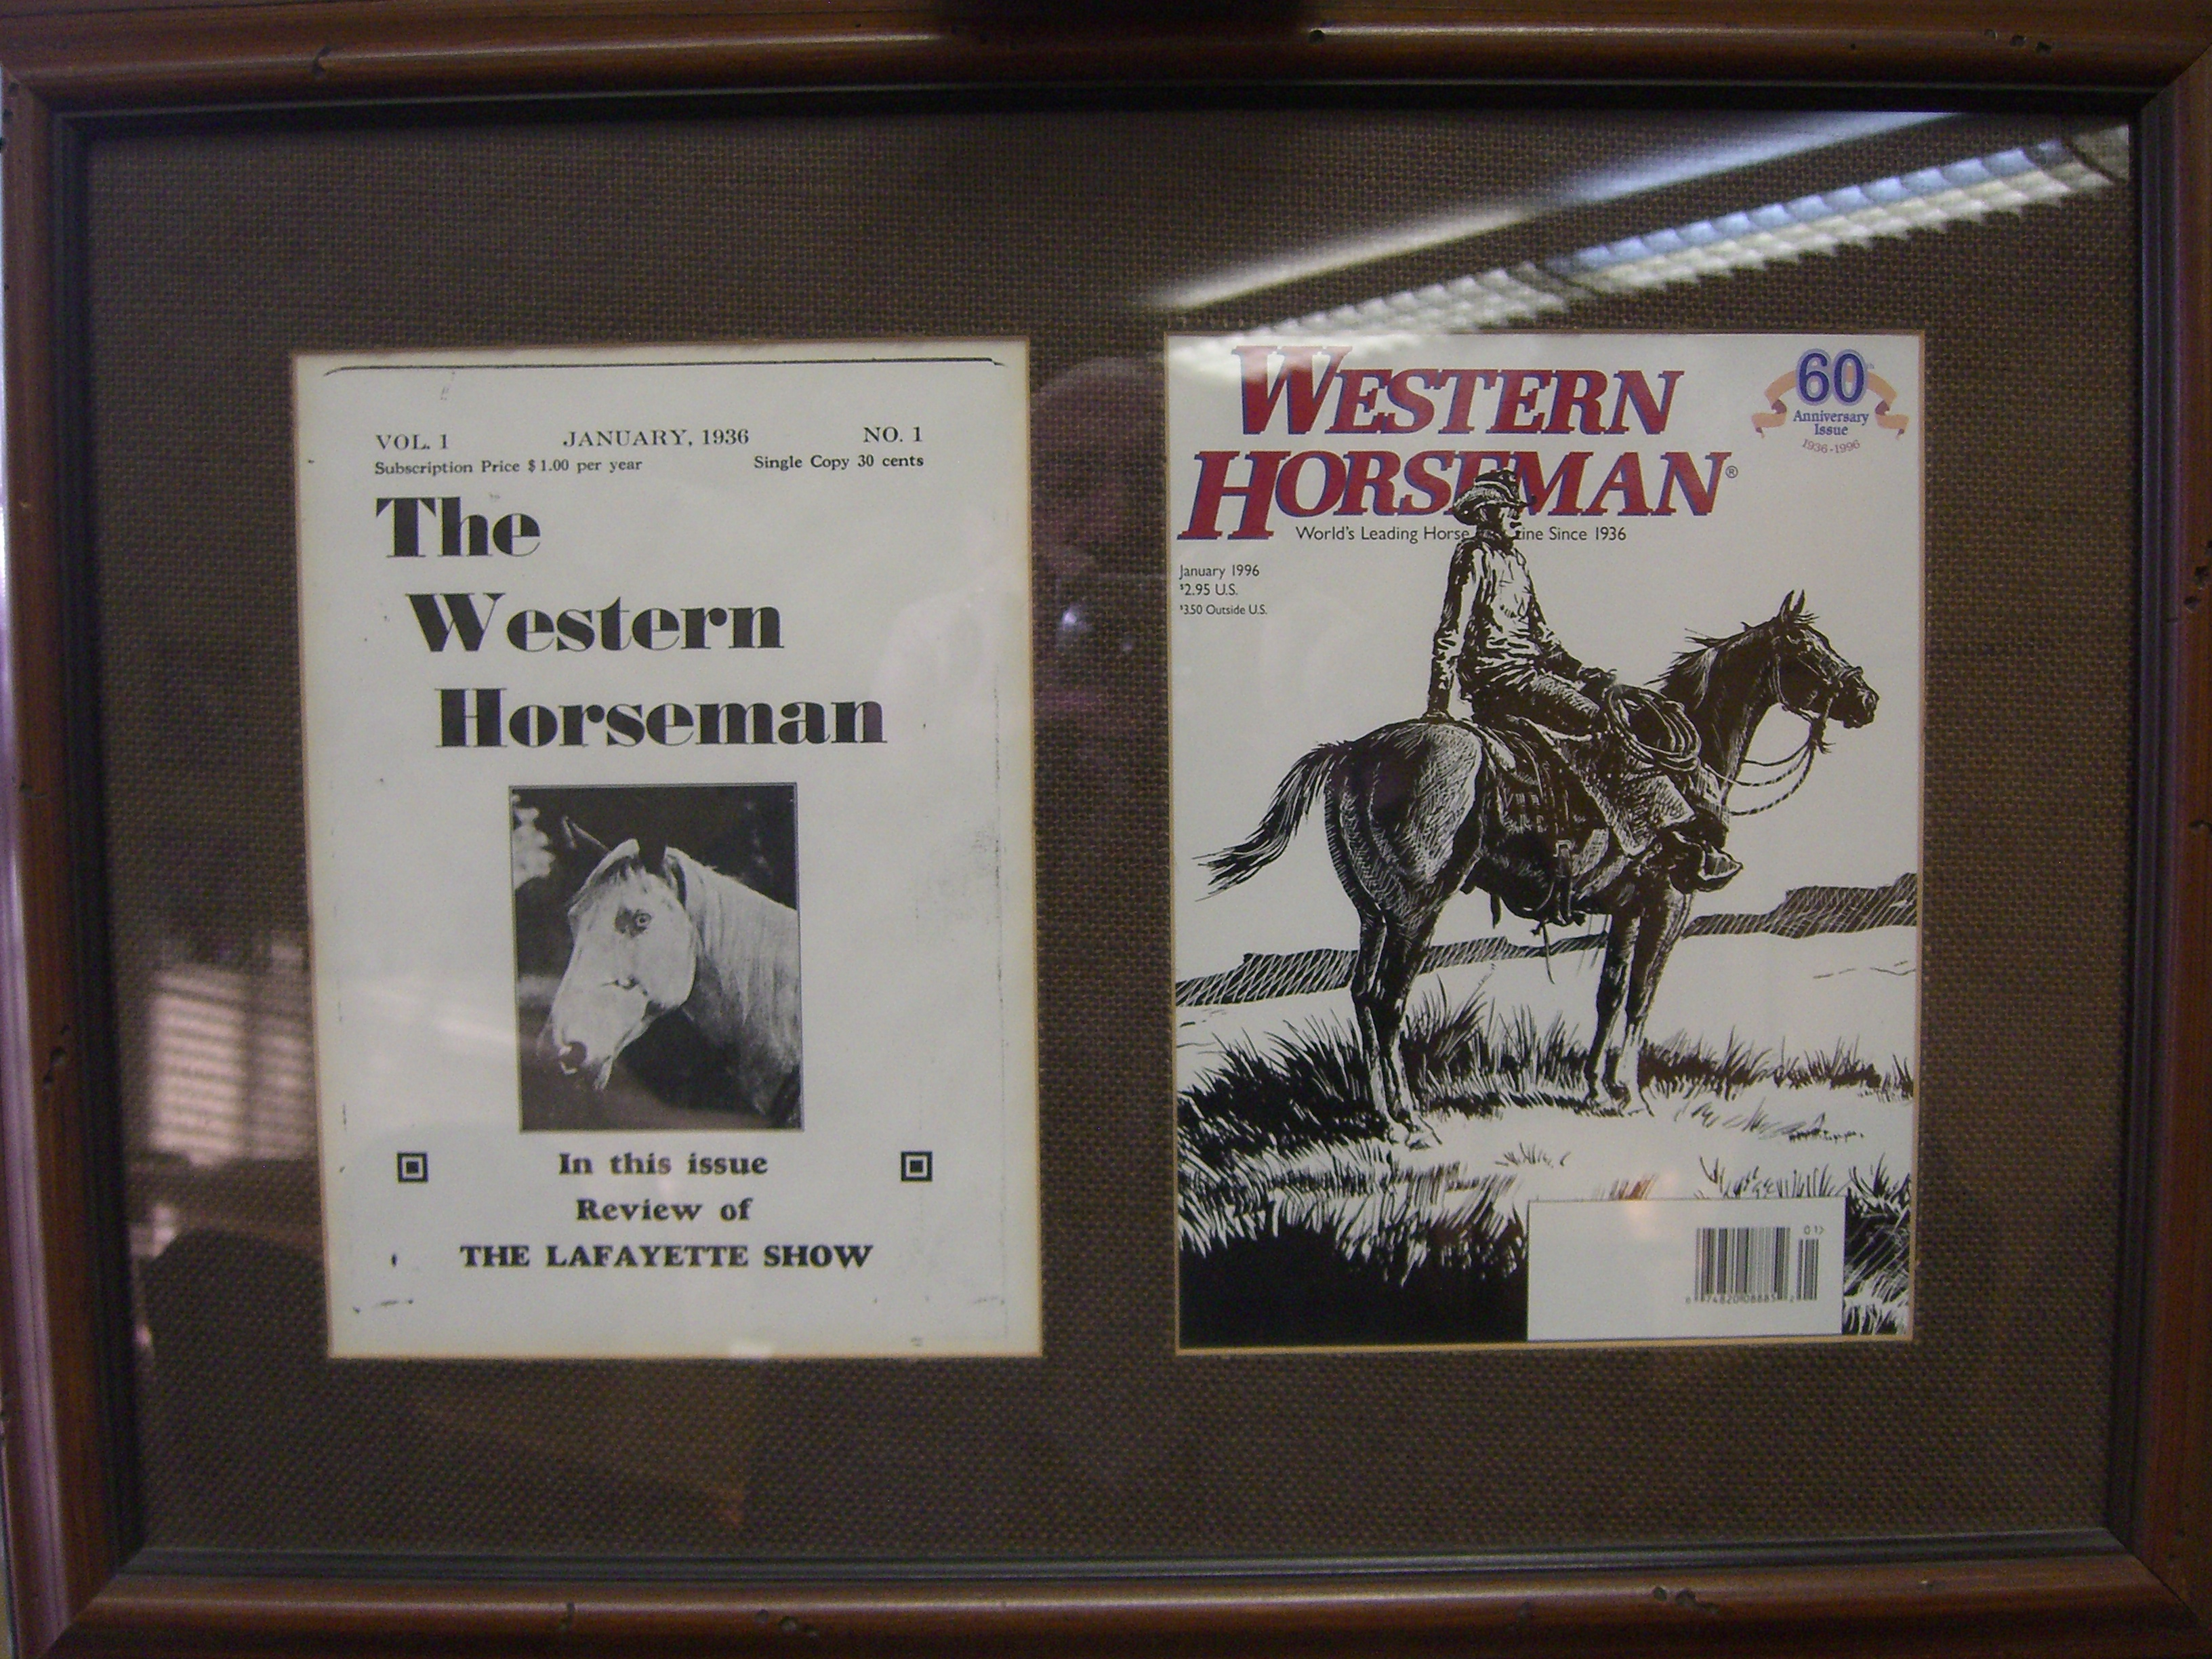 The first and 60th anniversary issues of Western Horseman